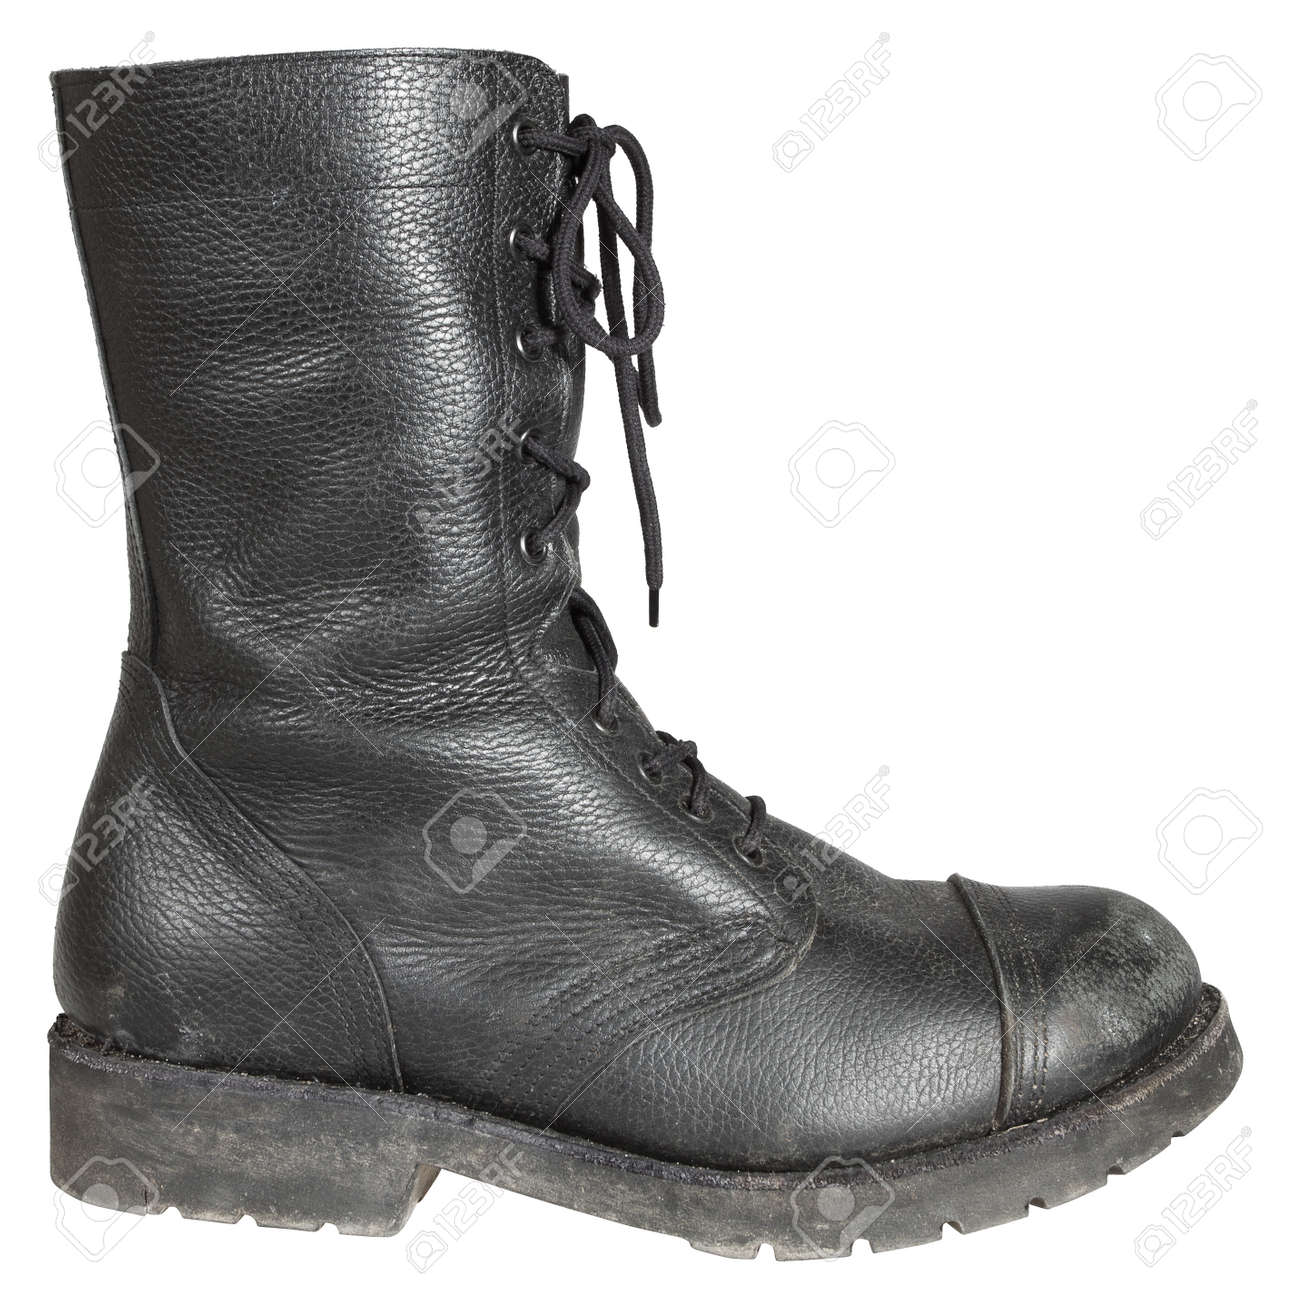 huge selection of b9075 43cfa Military Boot, Army Shoes isolated on white background, used..